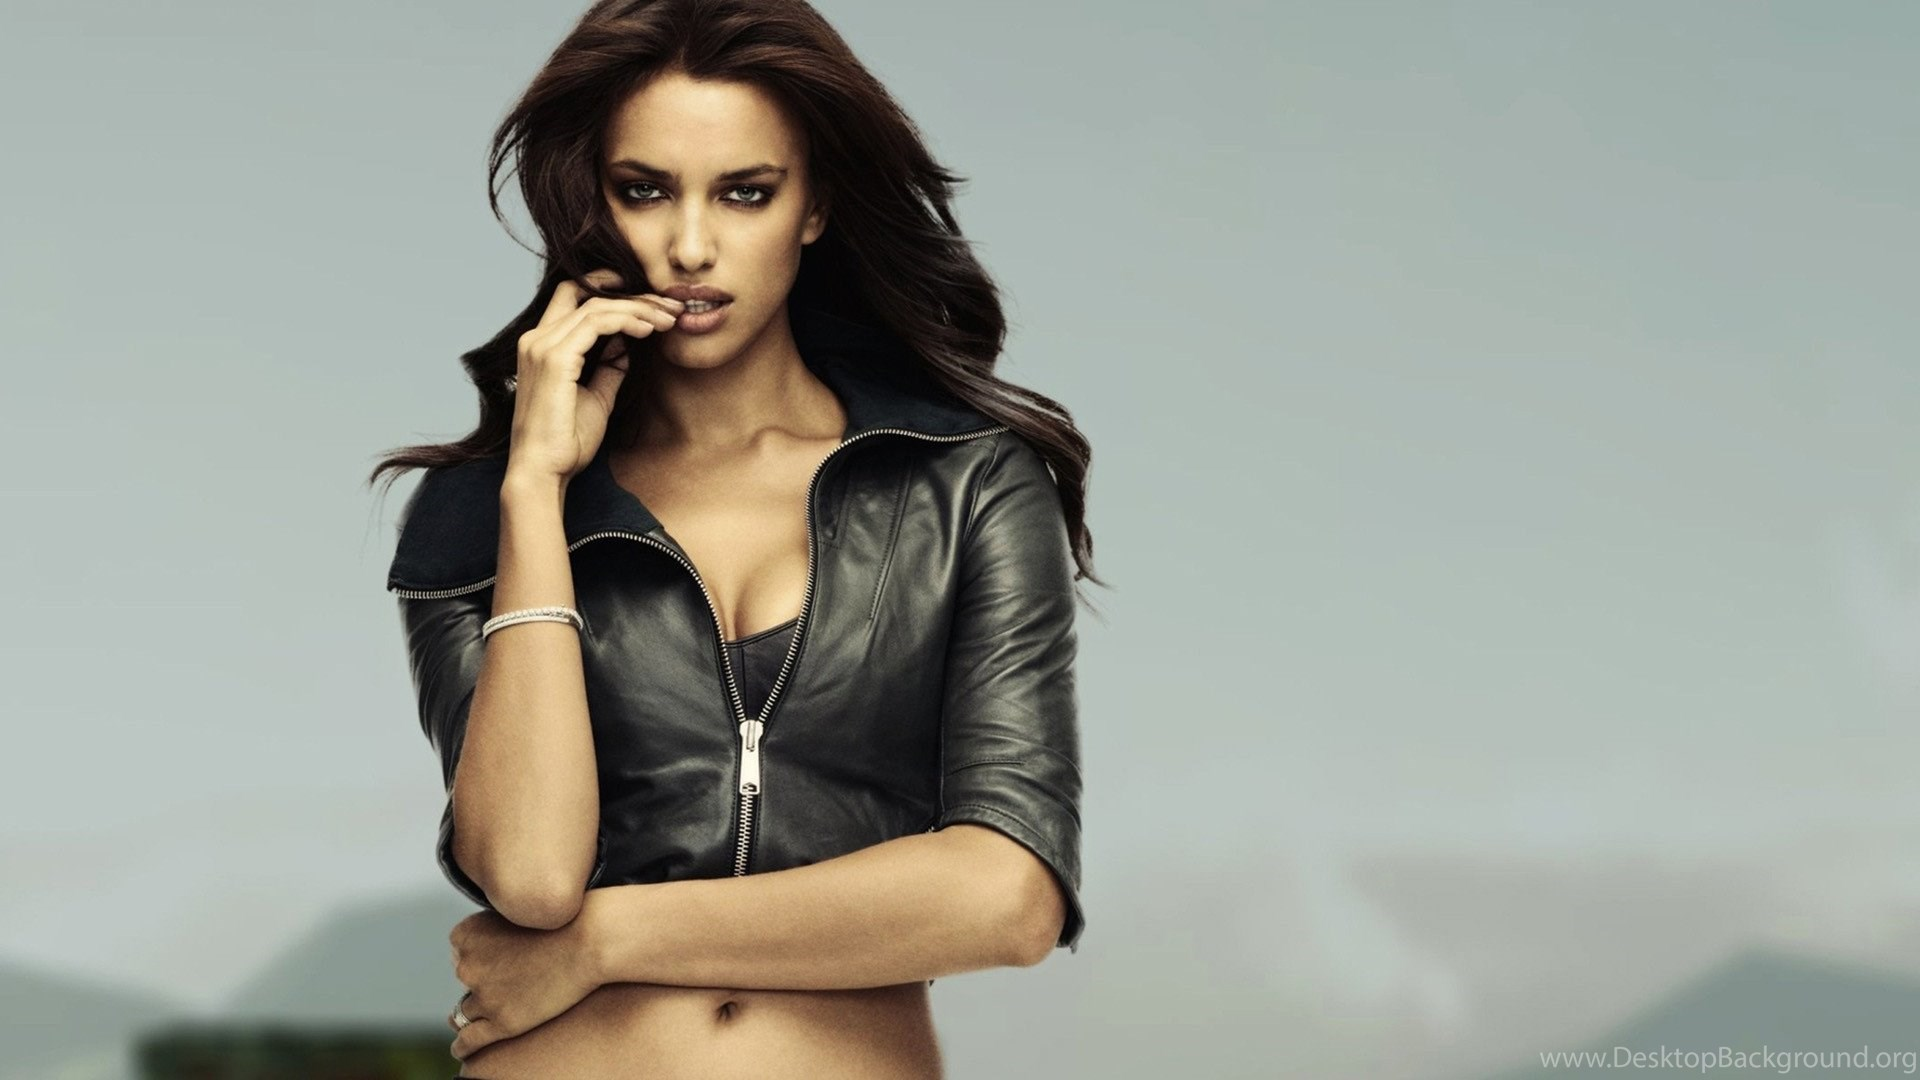 irina shayk wallpapers for iphone wallpapers desktop background